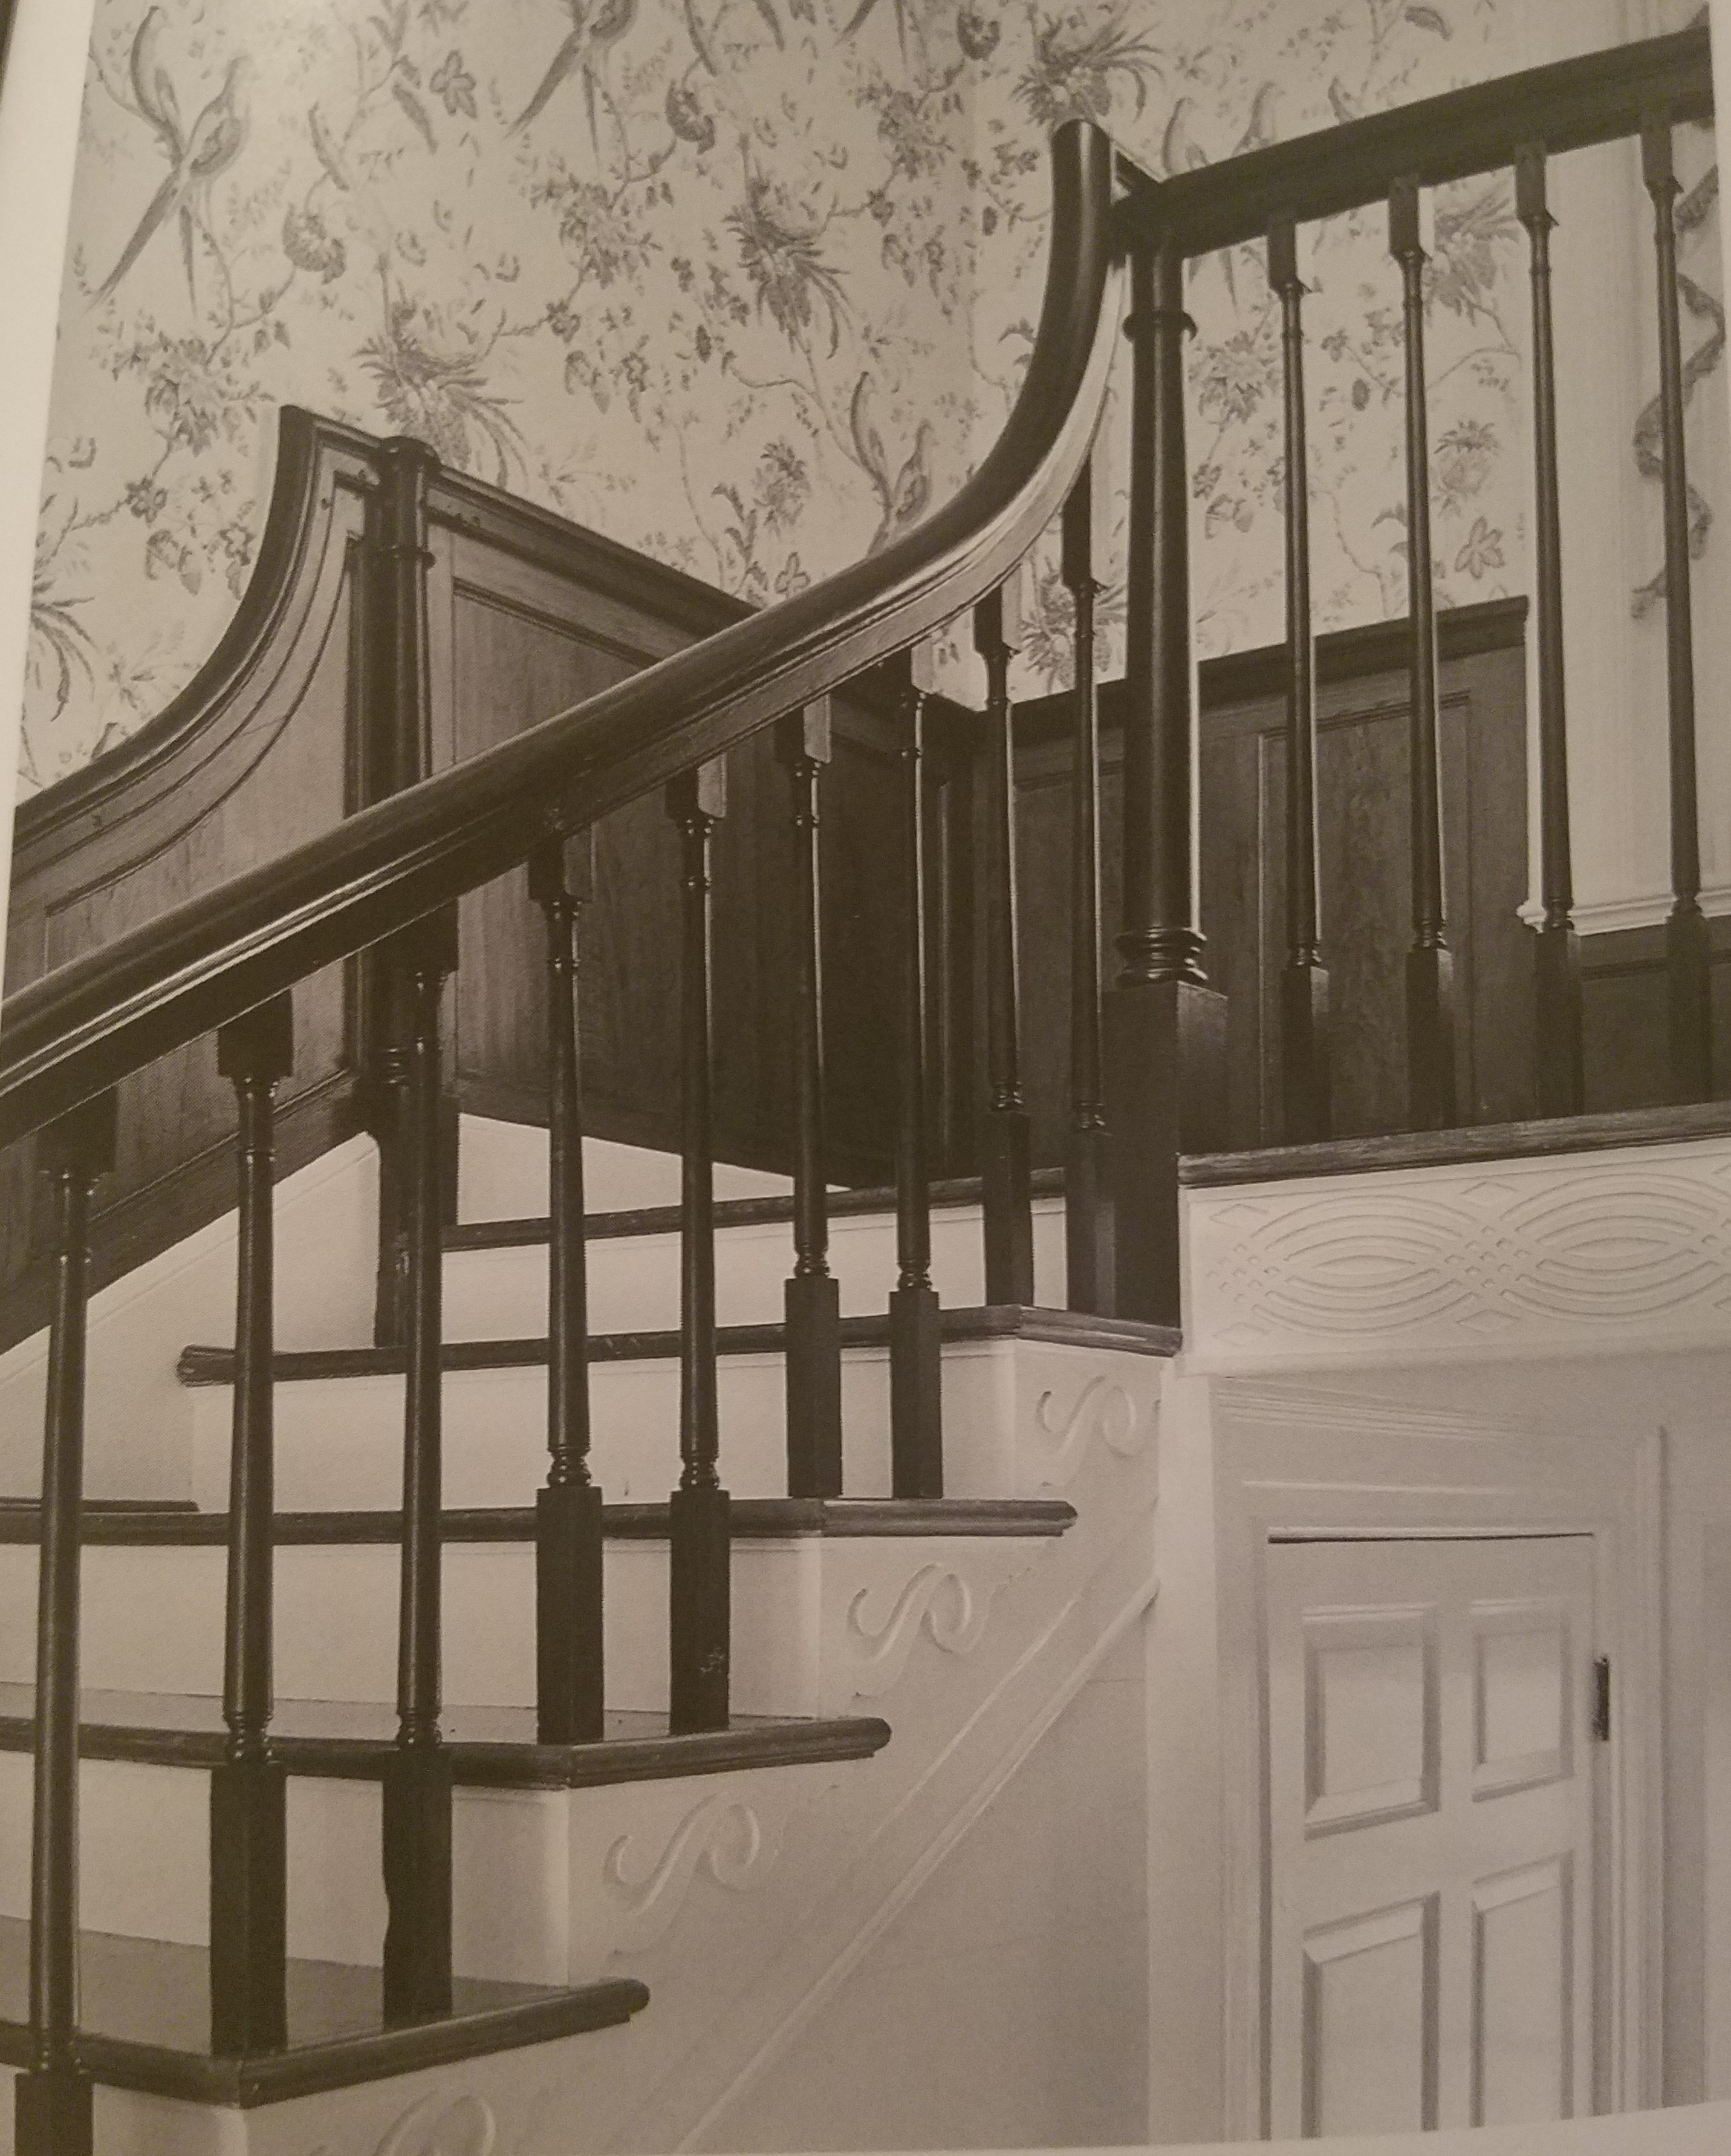 The intiquetly carved wood straircase with engraved newels and shadow baluster.